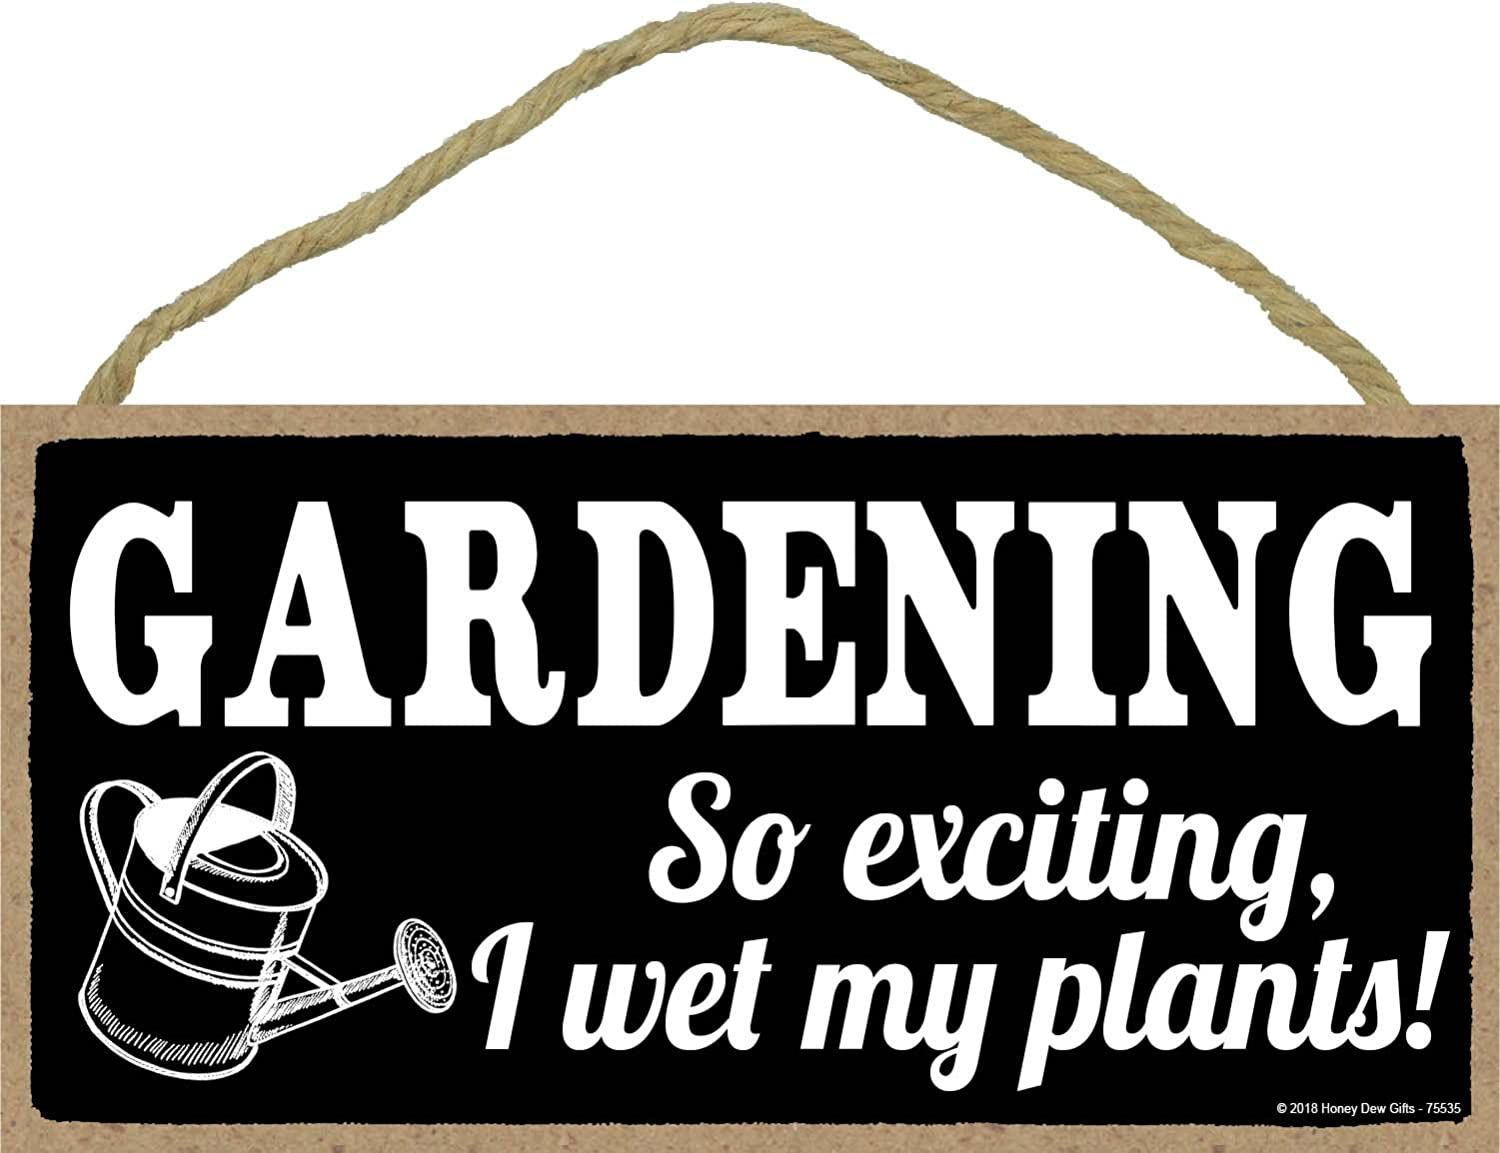 Gardening So Exciting I Wet My Plants- 5 x 10 inch Hanging Funny Garden Sign, Garden Art, Decorative Wood Sign Home Decor